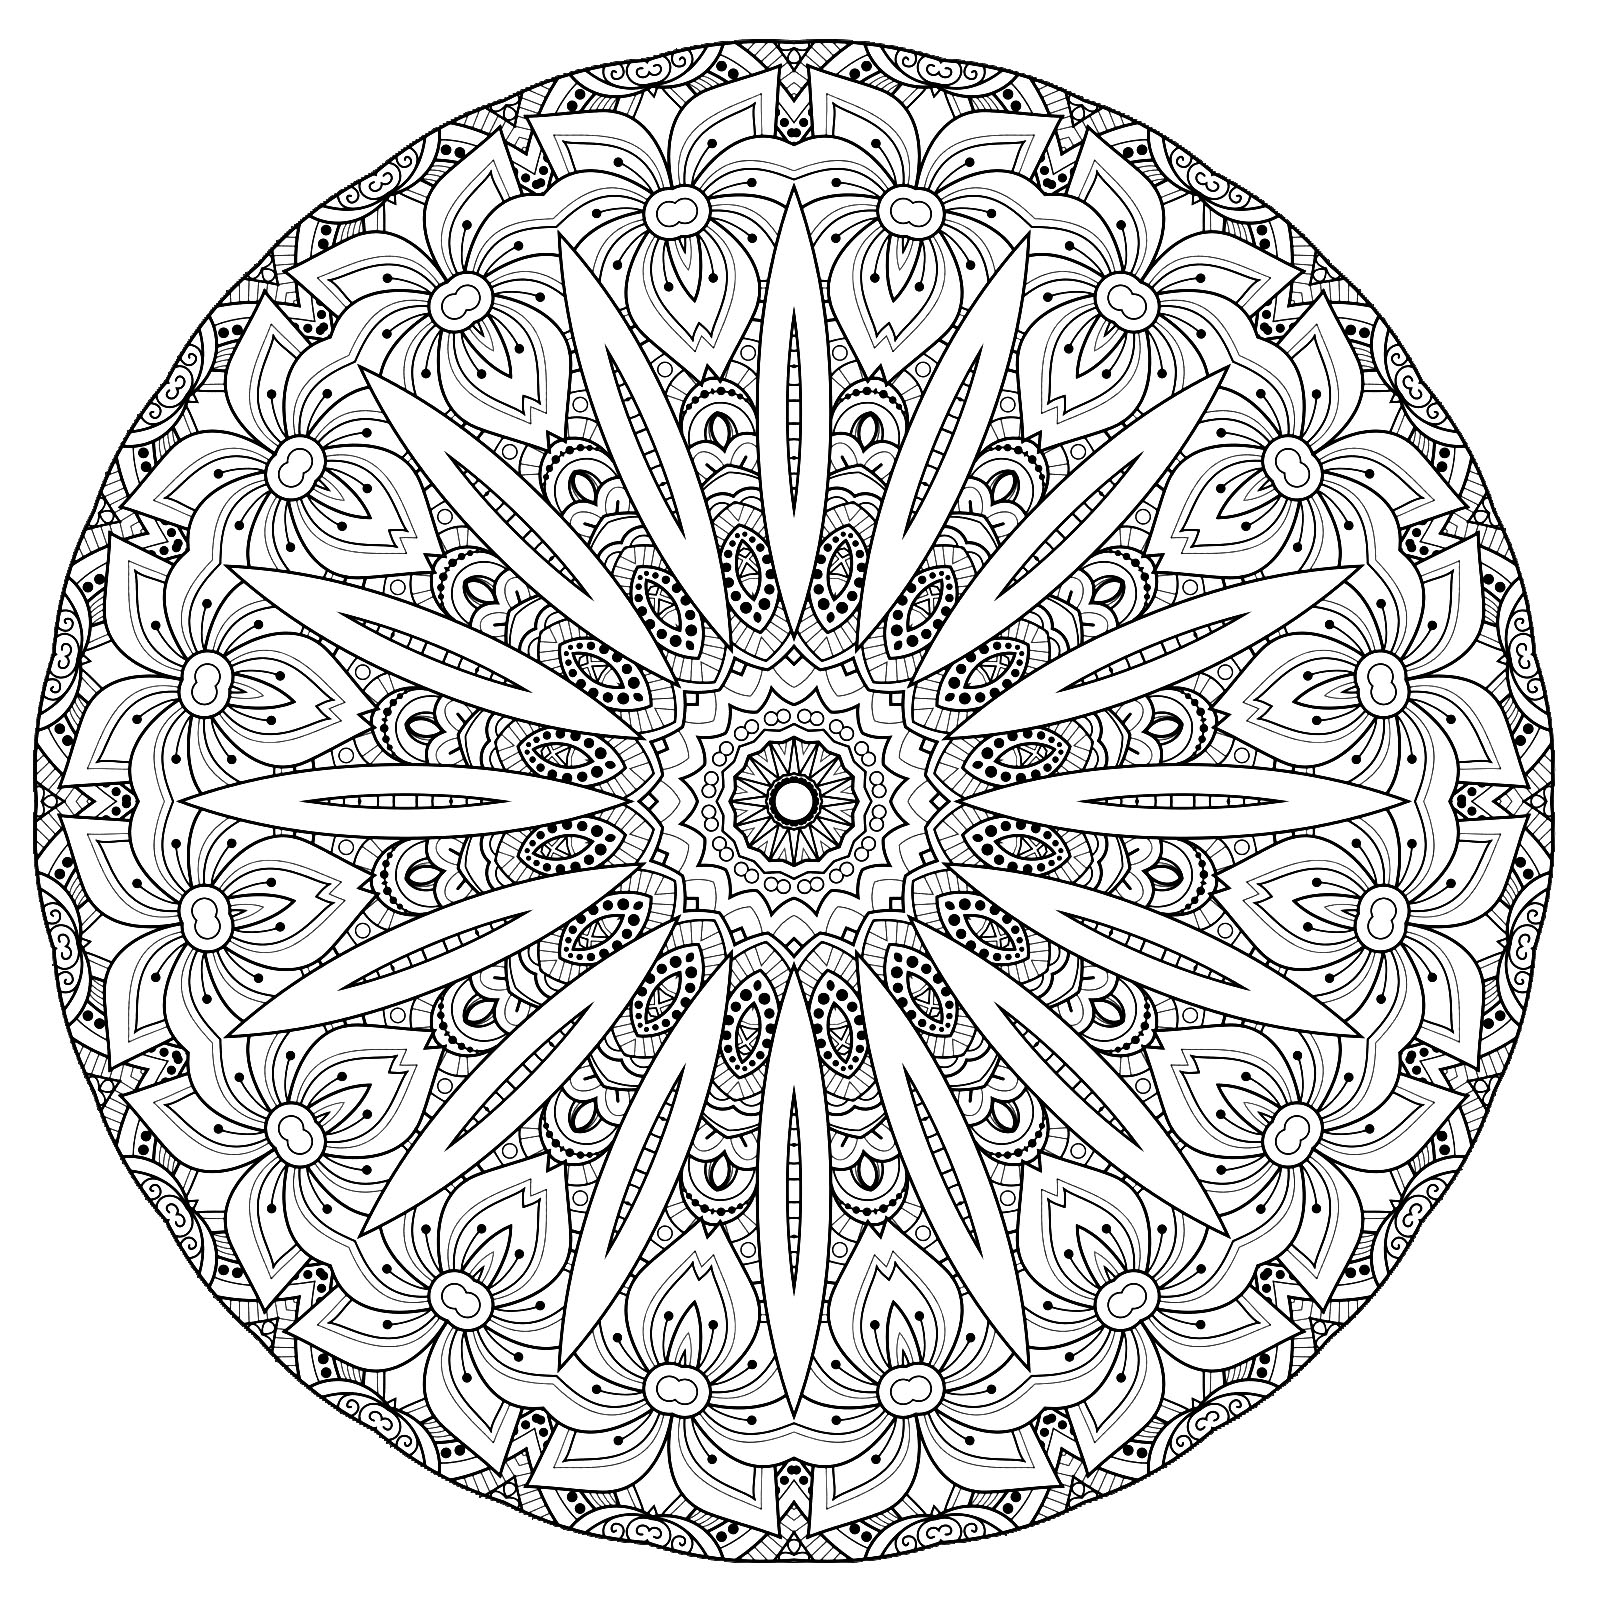 Beautiful flowers and abstract shapes for a Mandala very original and harmonious. Do whatever it takes to get rid of any distractions that may interfere with your coloring, and you will be relaxed for sure !